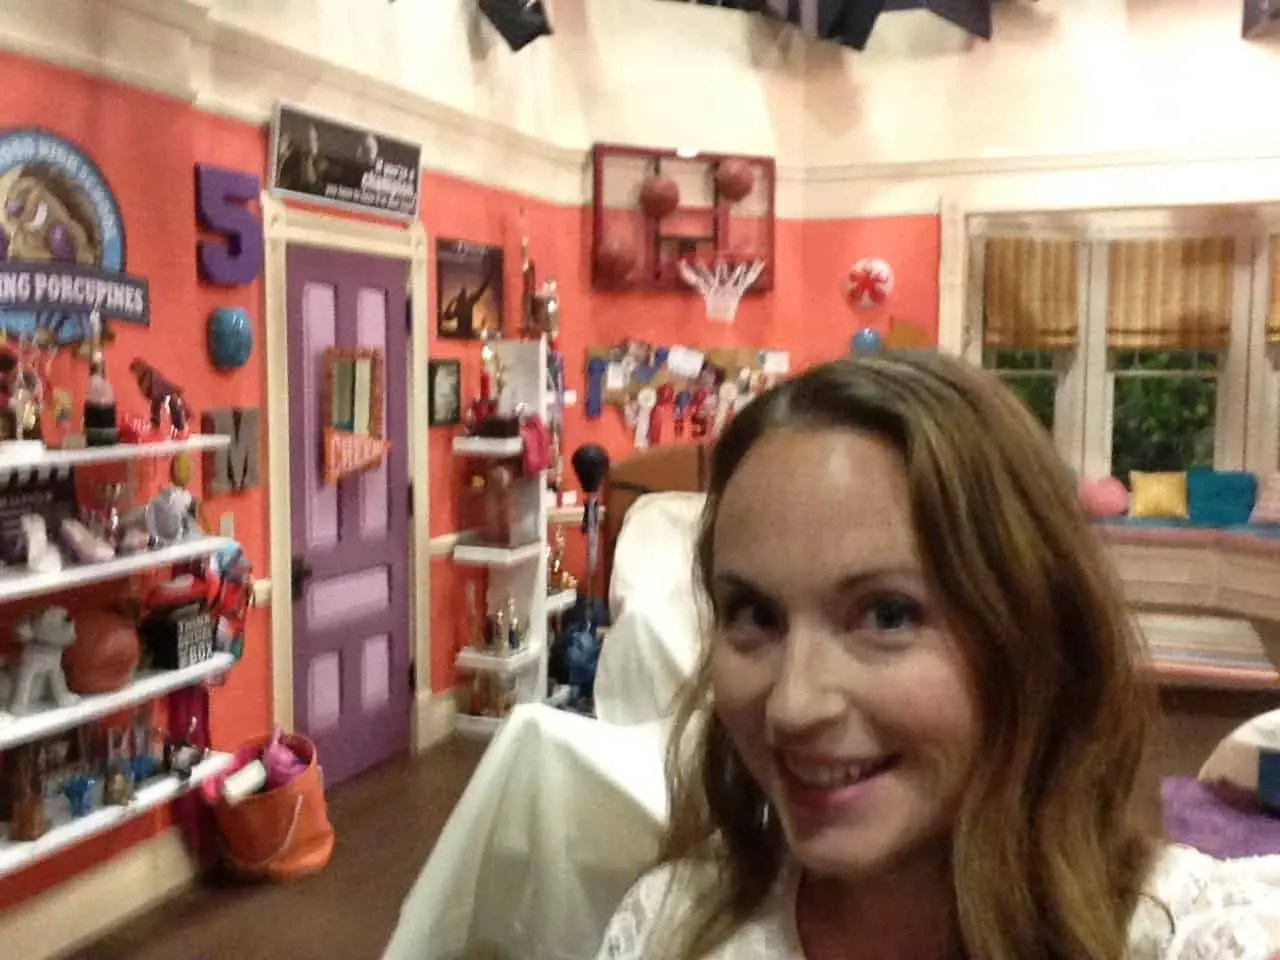 A selfie on set. I want Liv and Maddie's bedroom. So much cool stuff!